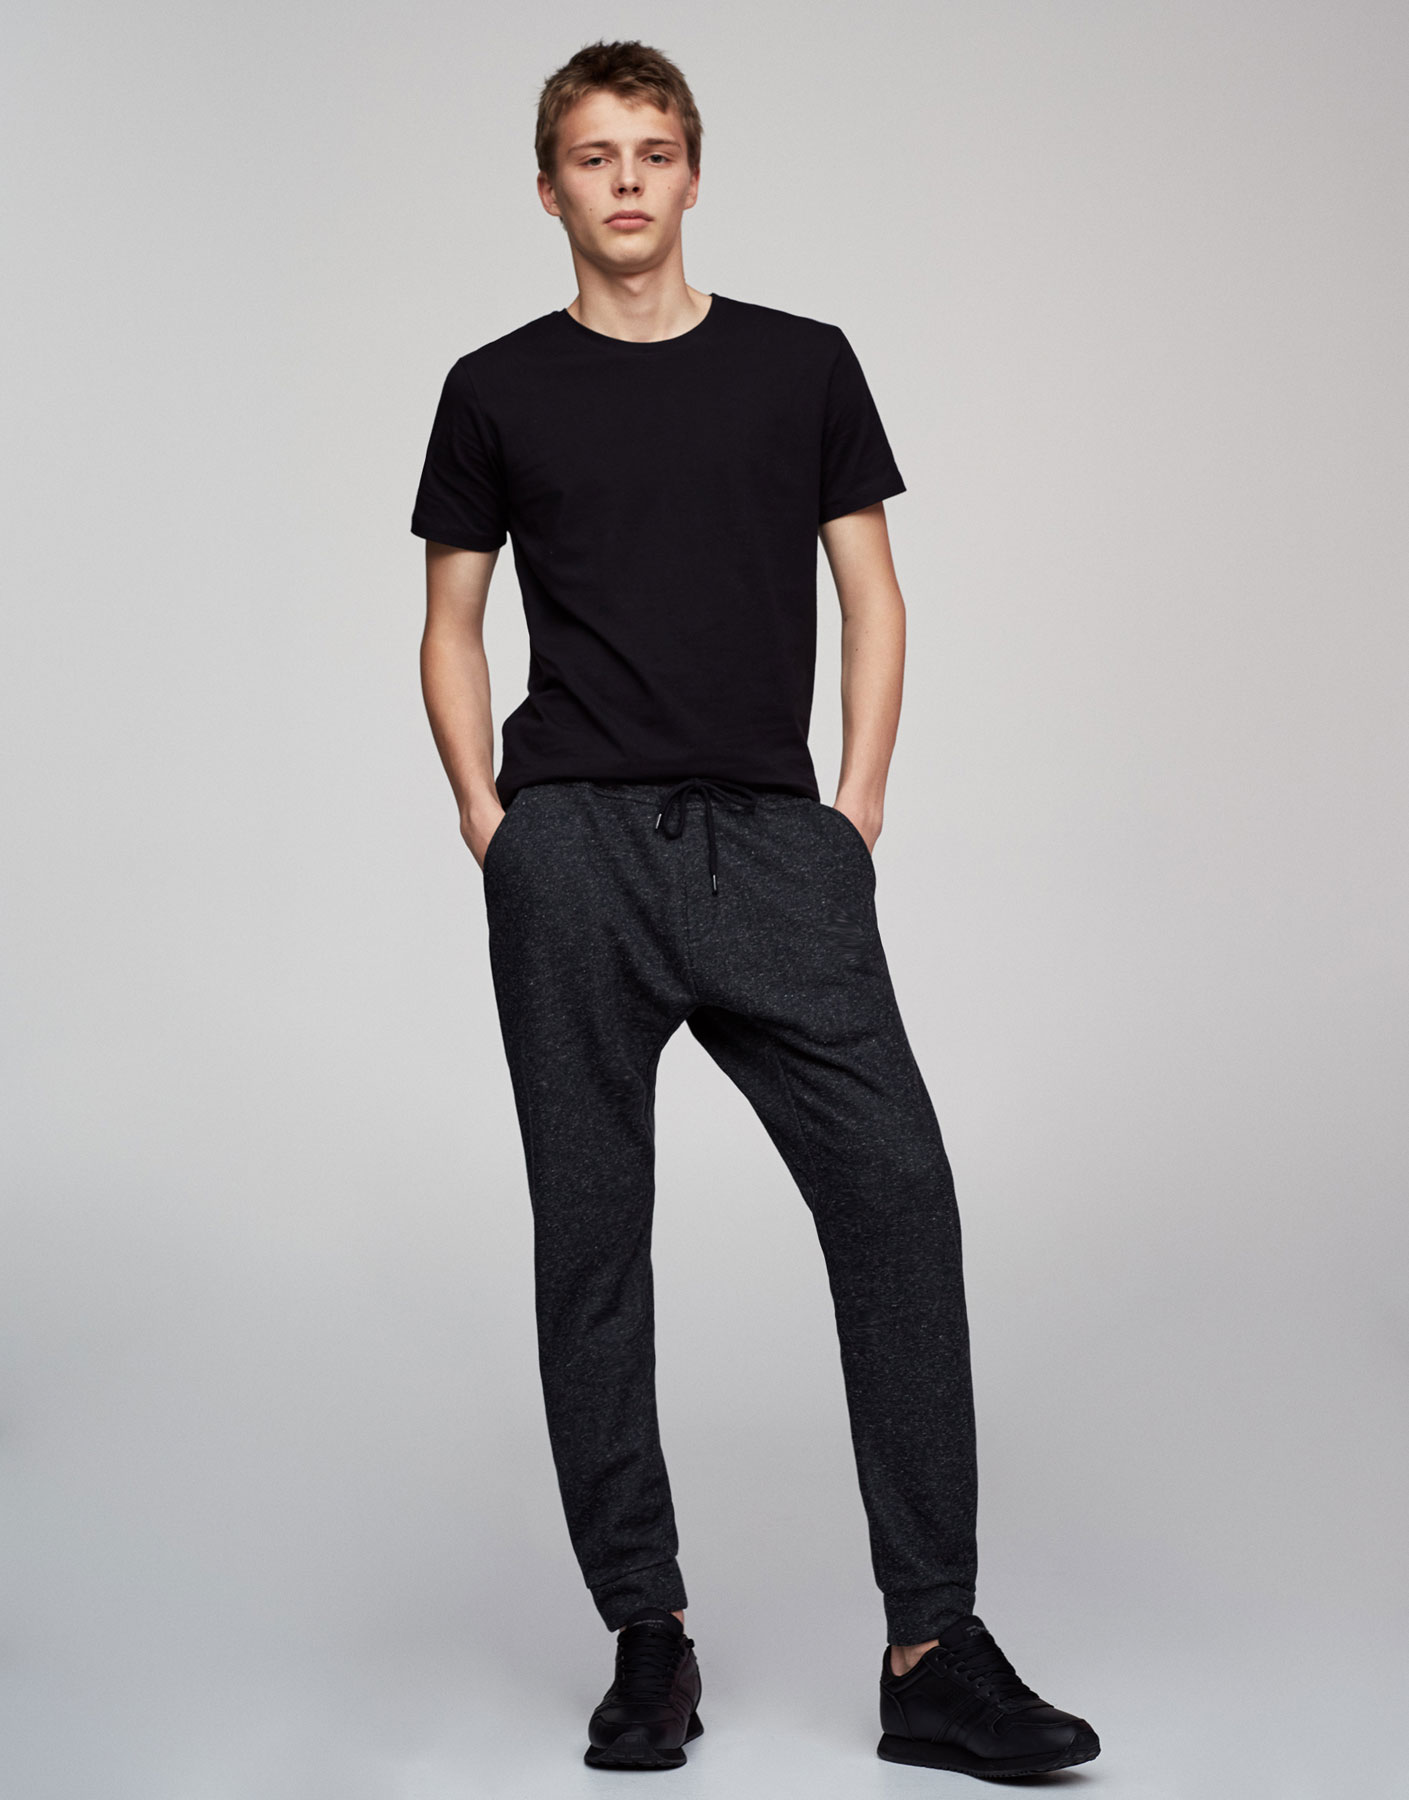 Baggy black jogging trousers